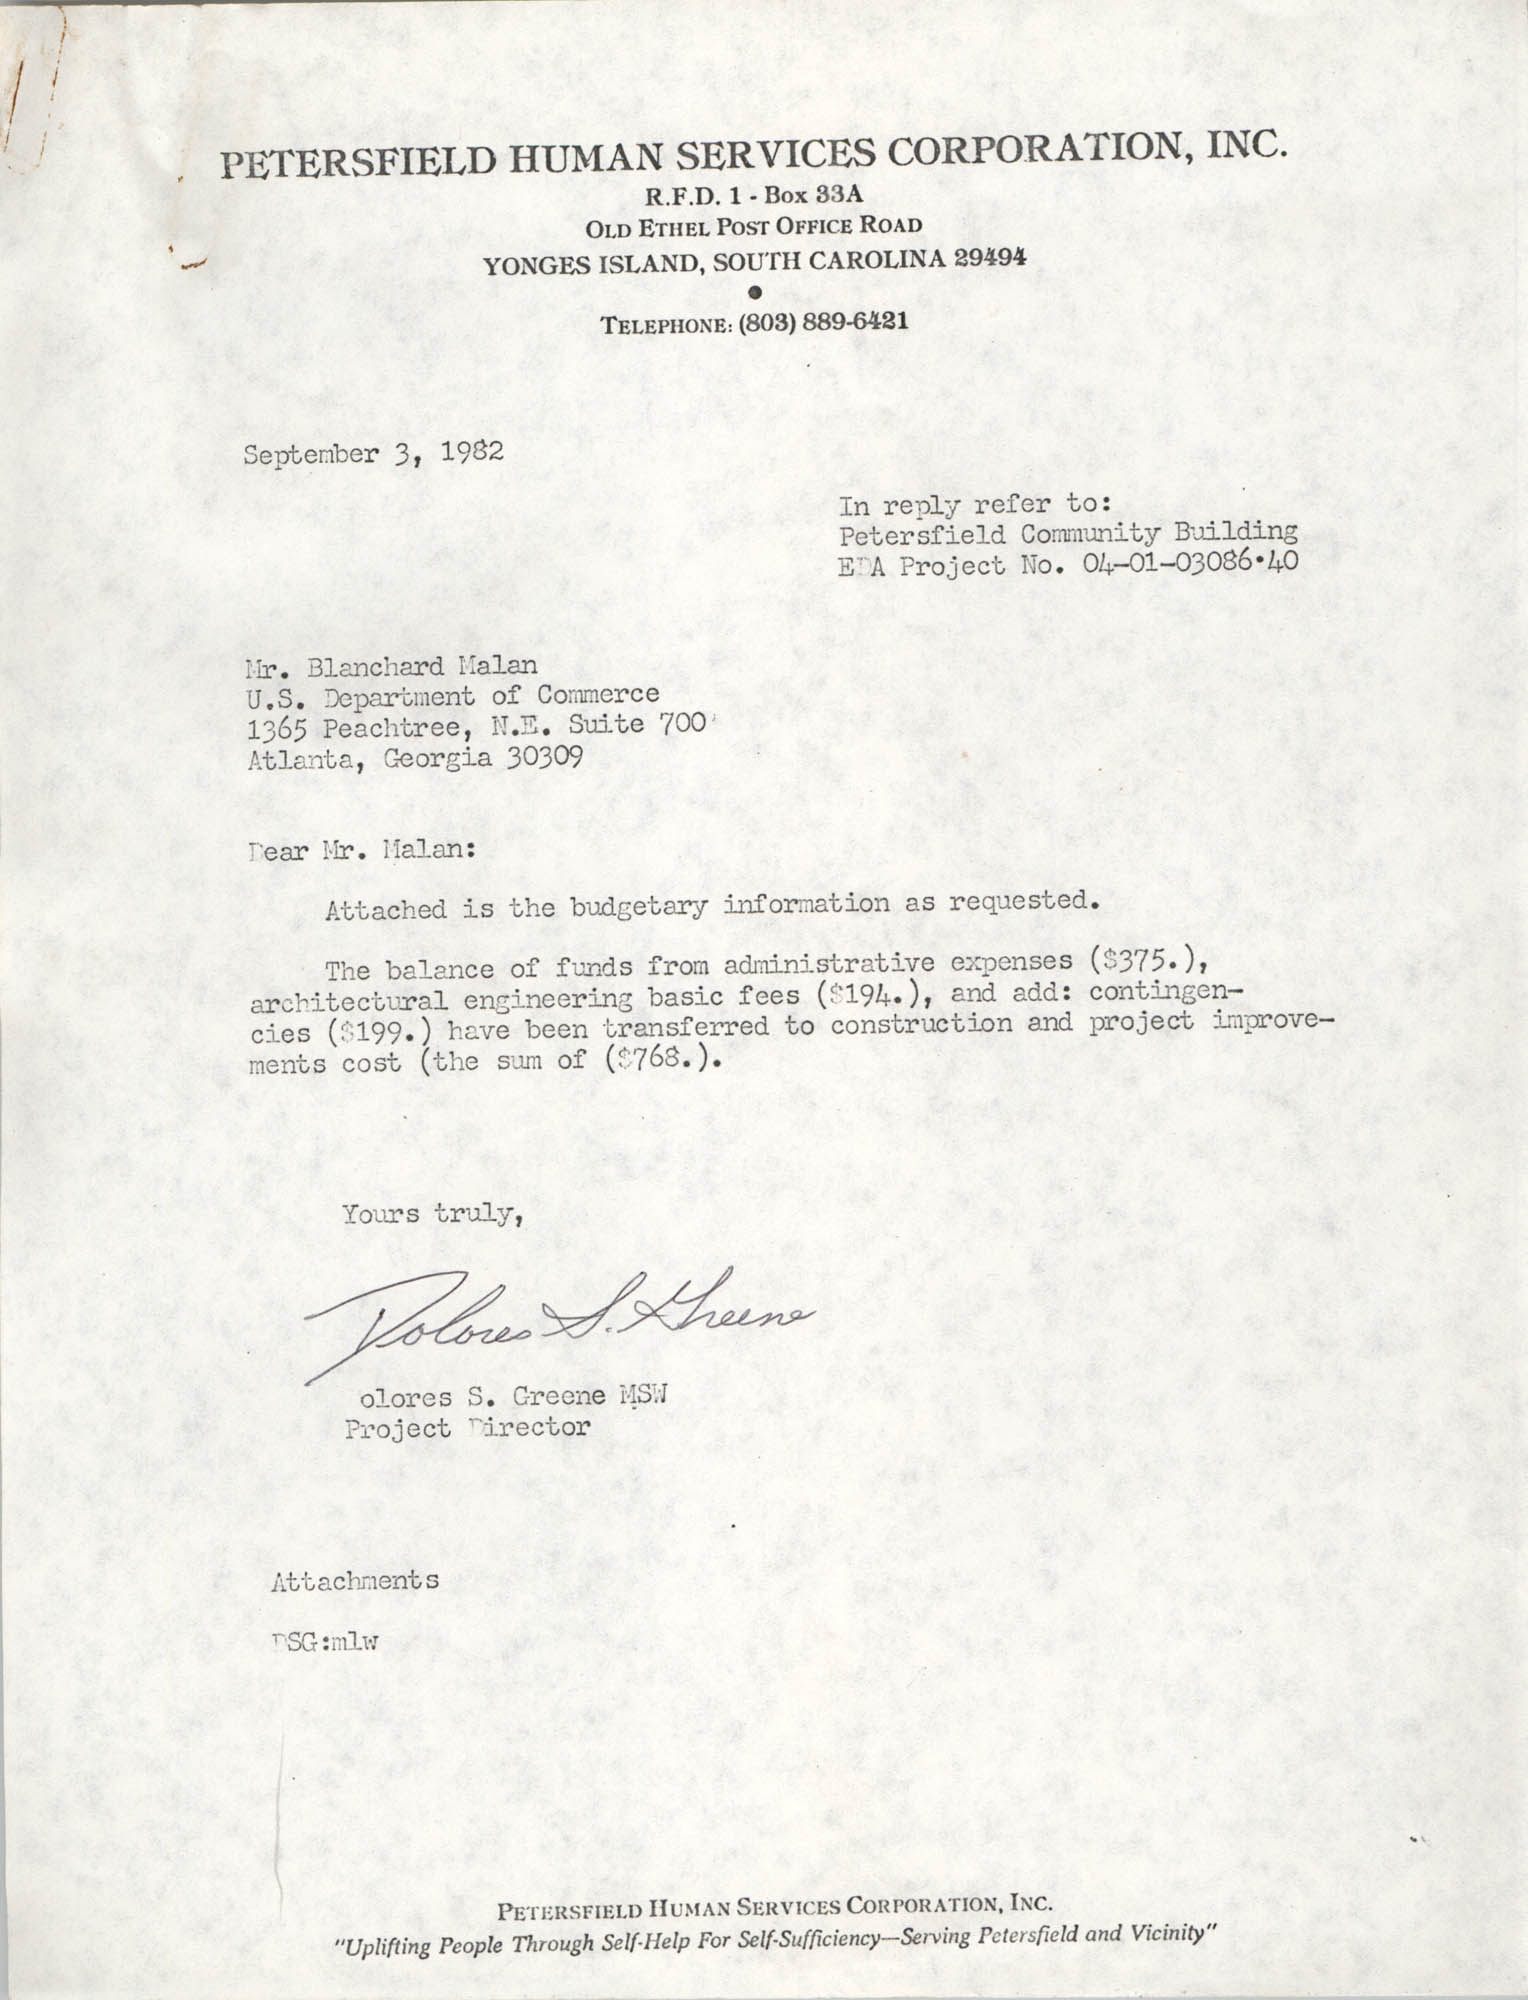 Letter from Dolores S. Greene to Blanchard Malan, September 3, 1982